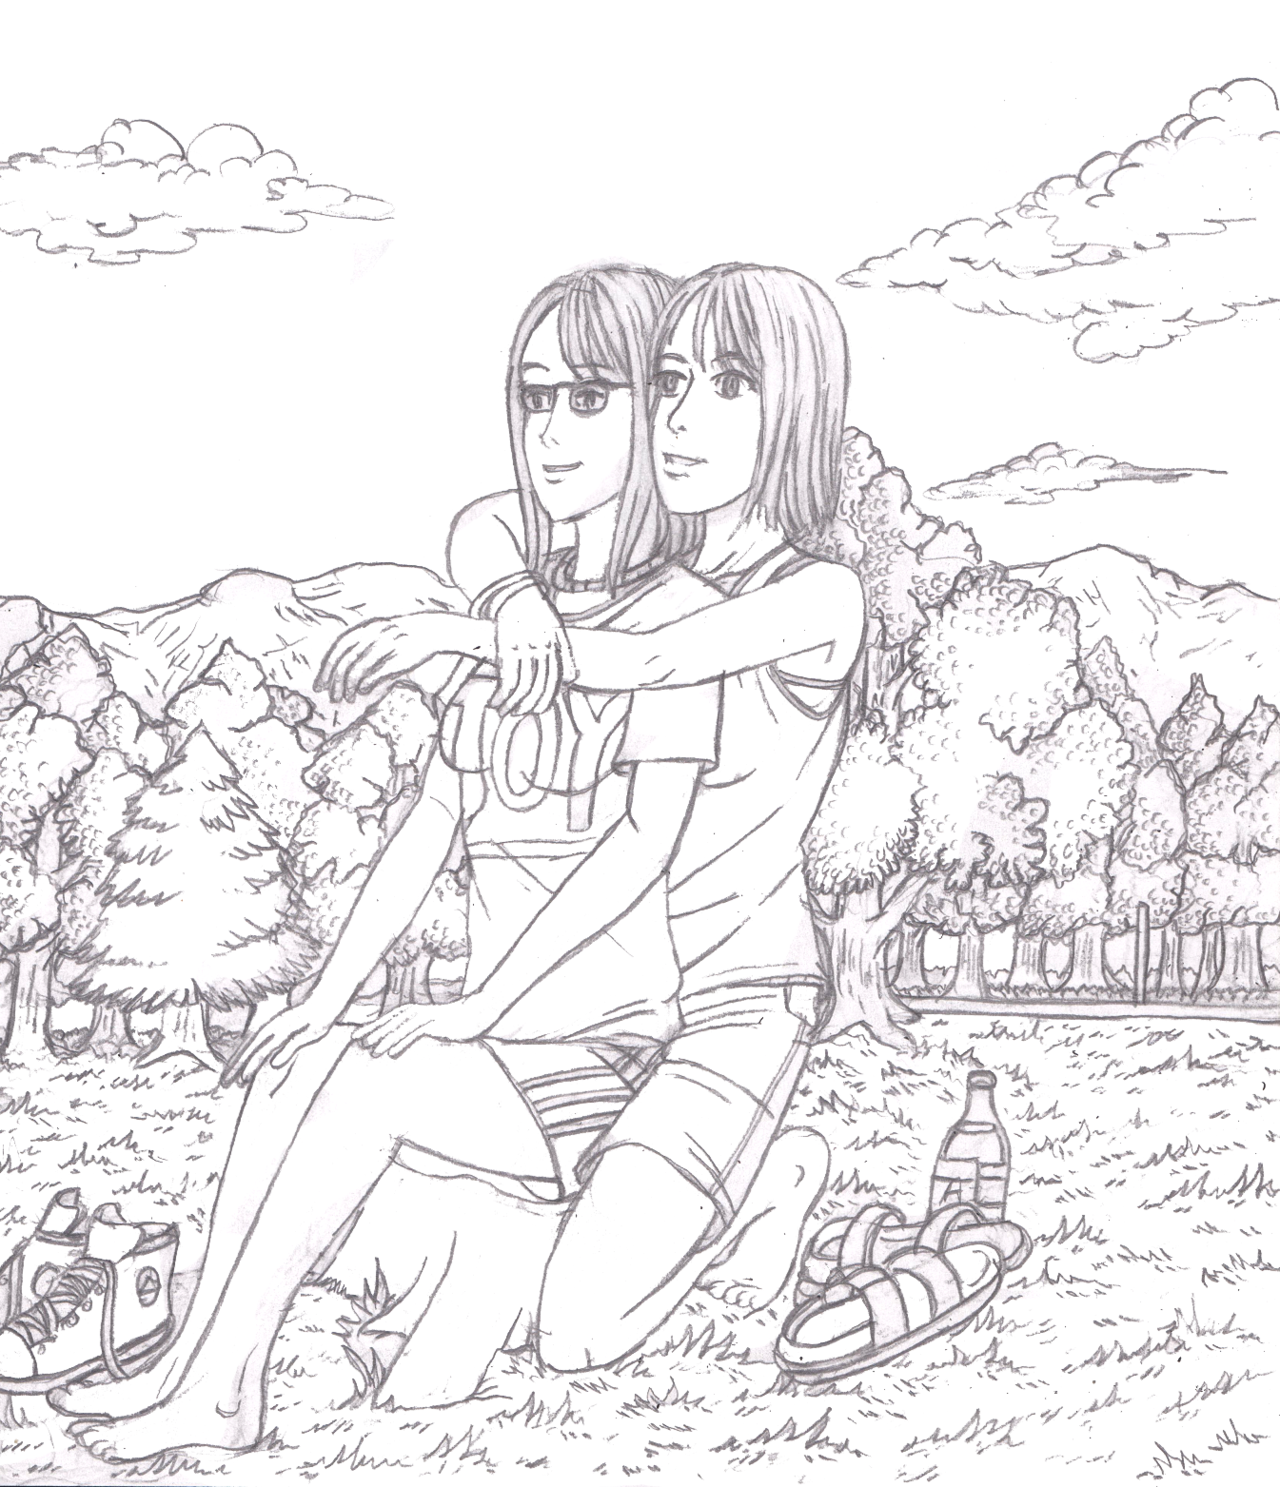 Finished my picture of Eilli and Ino.